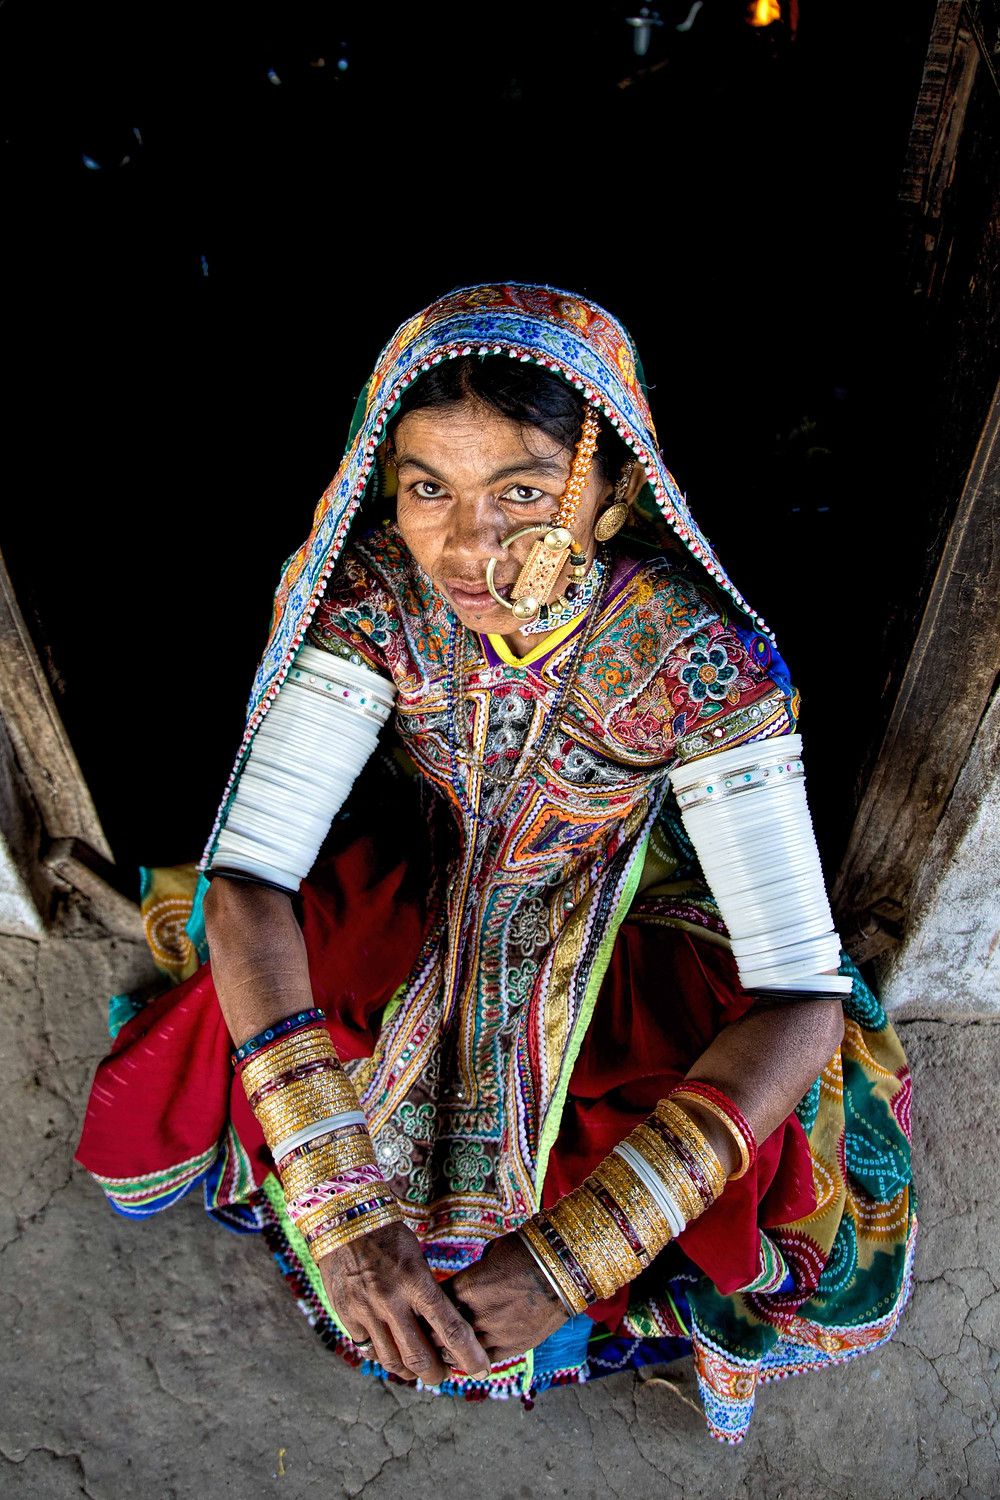 Meghwal woman in her traditional attire